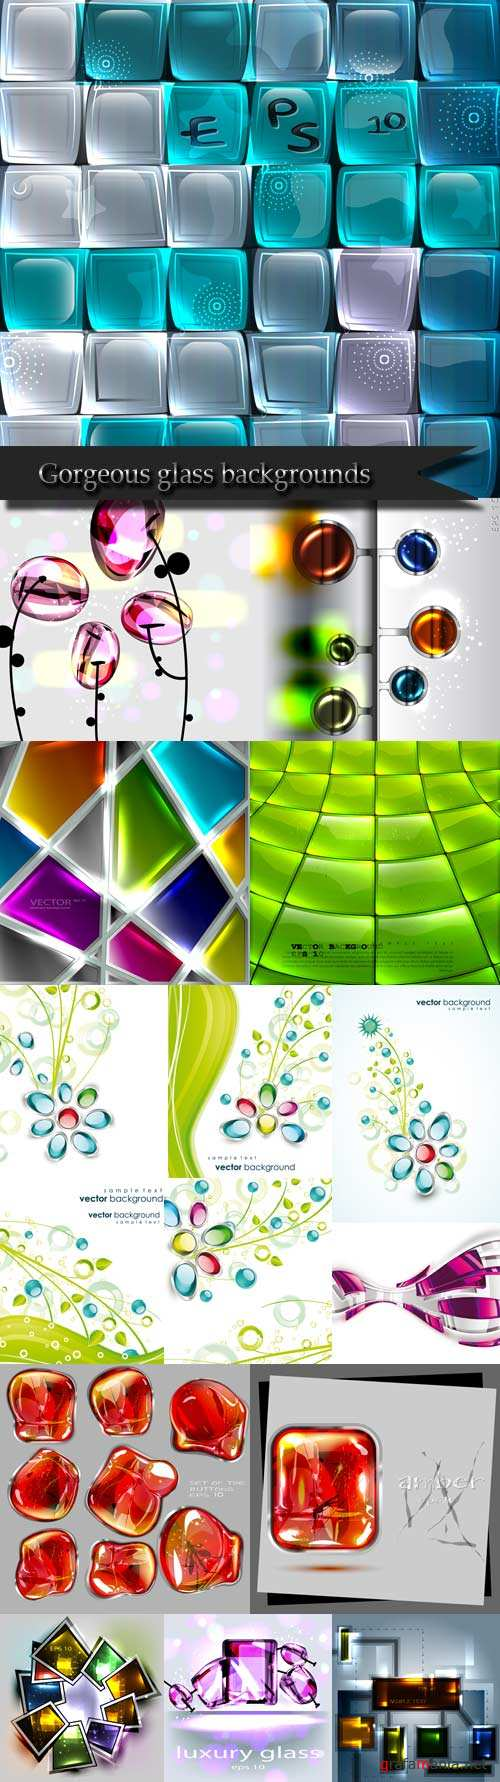 Gorgeous glass backgrounds